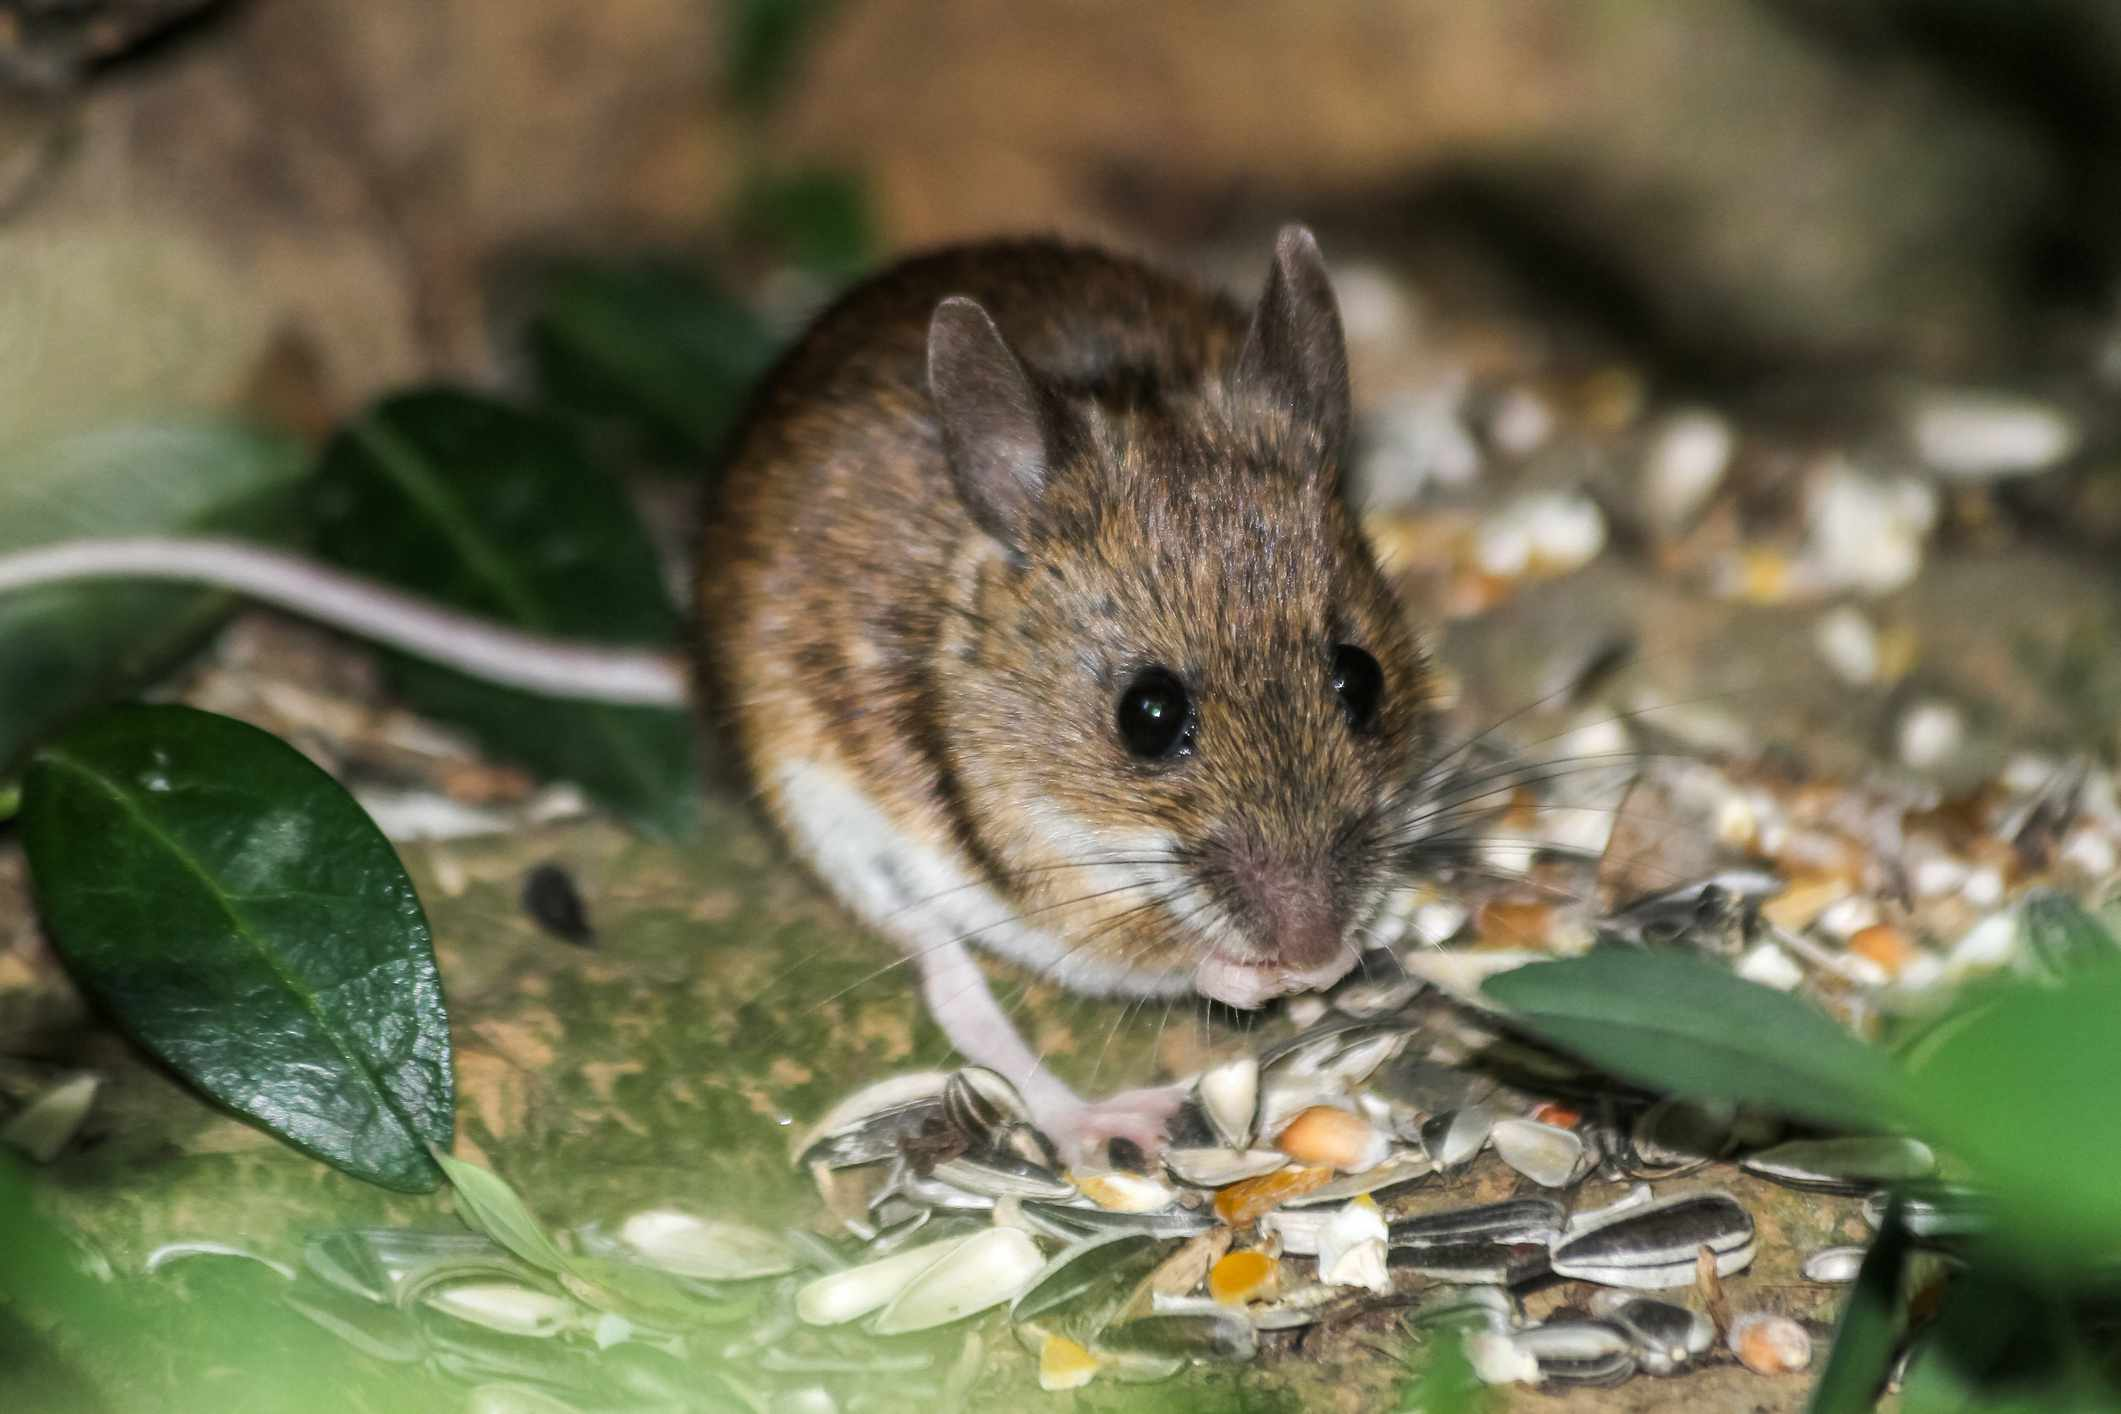 House mouse (Mus musculus) feeding in the forest, Sonian Forest, Brussels, Belgium